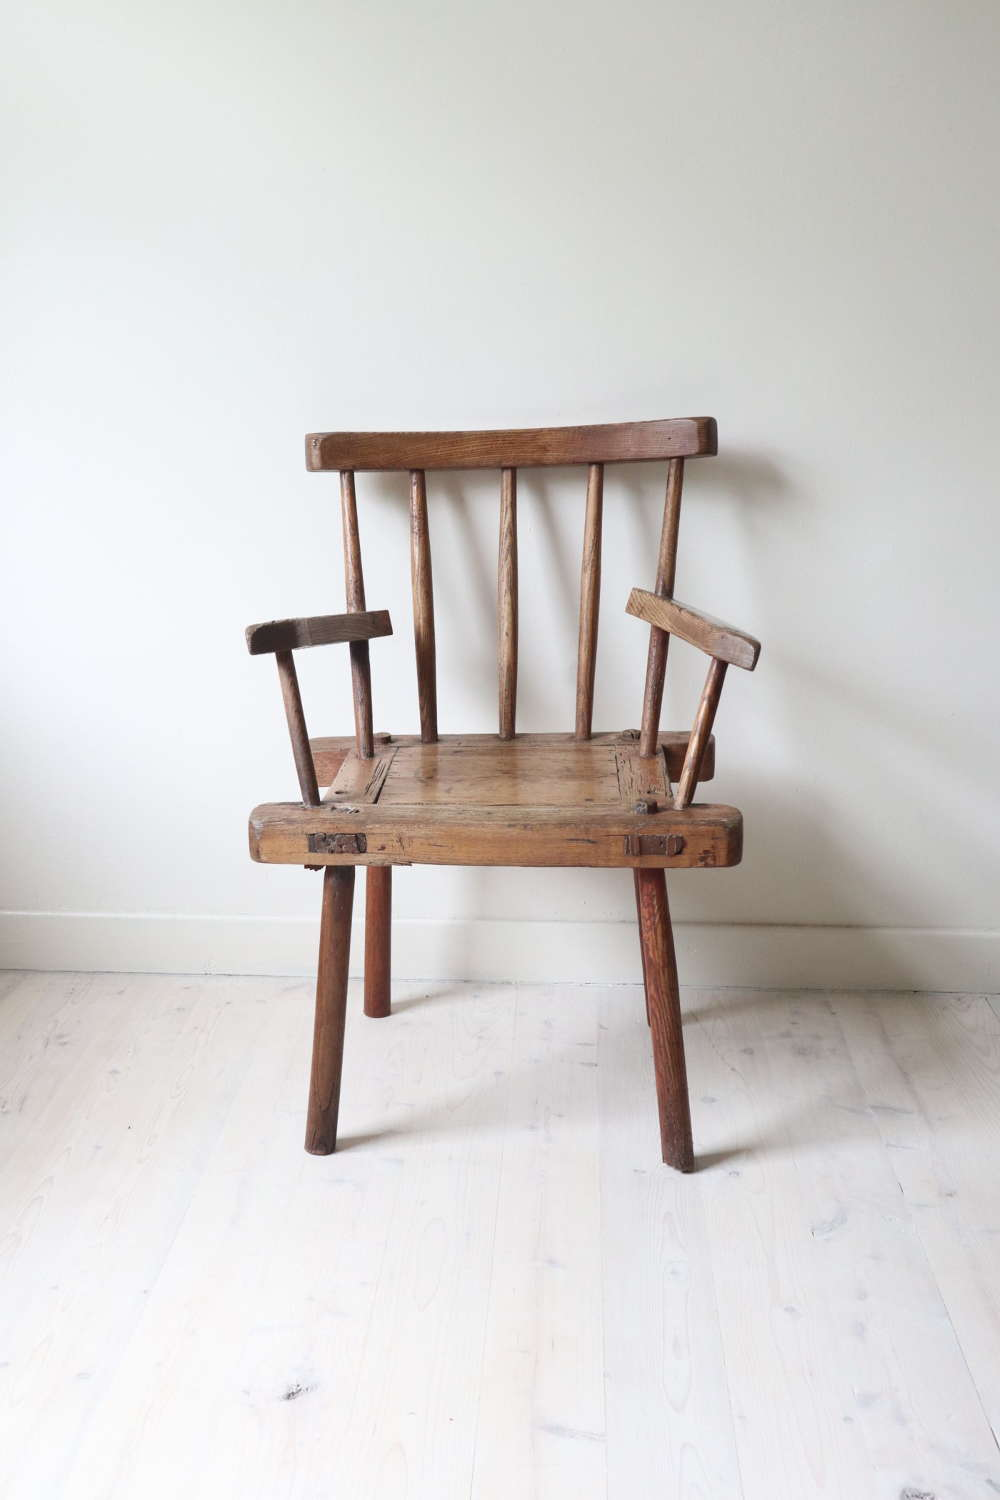 19th Century Irish country/vernacular hedge chair from Co. Antrim